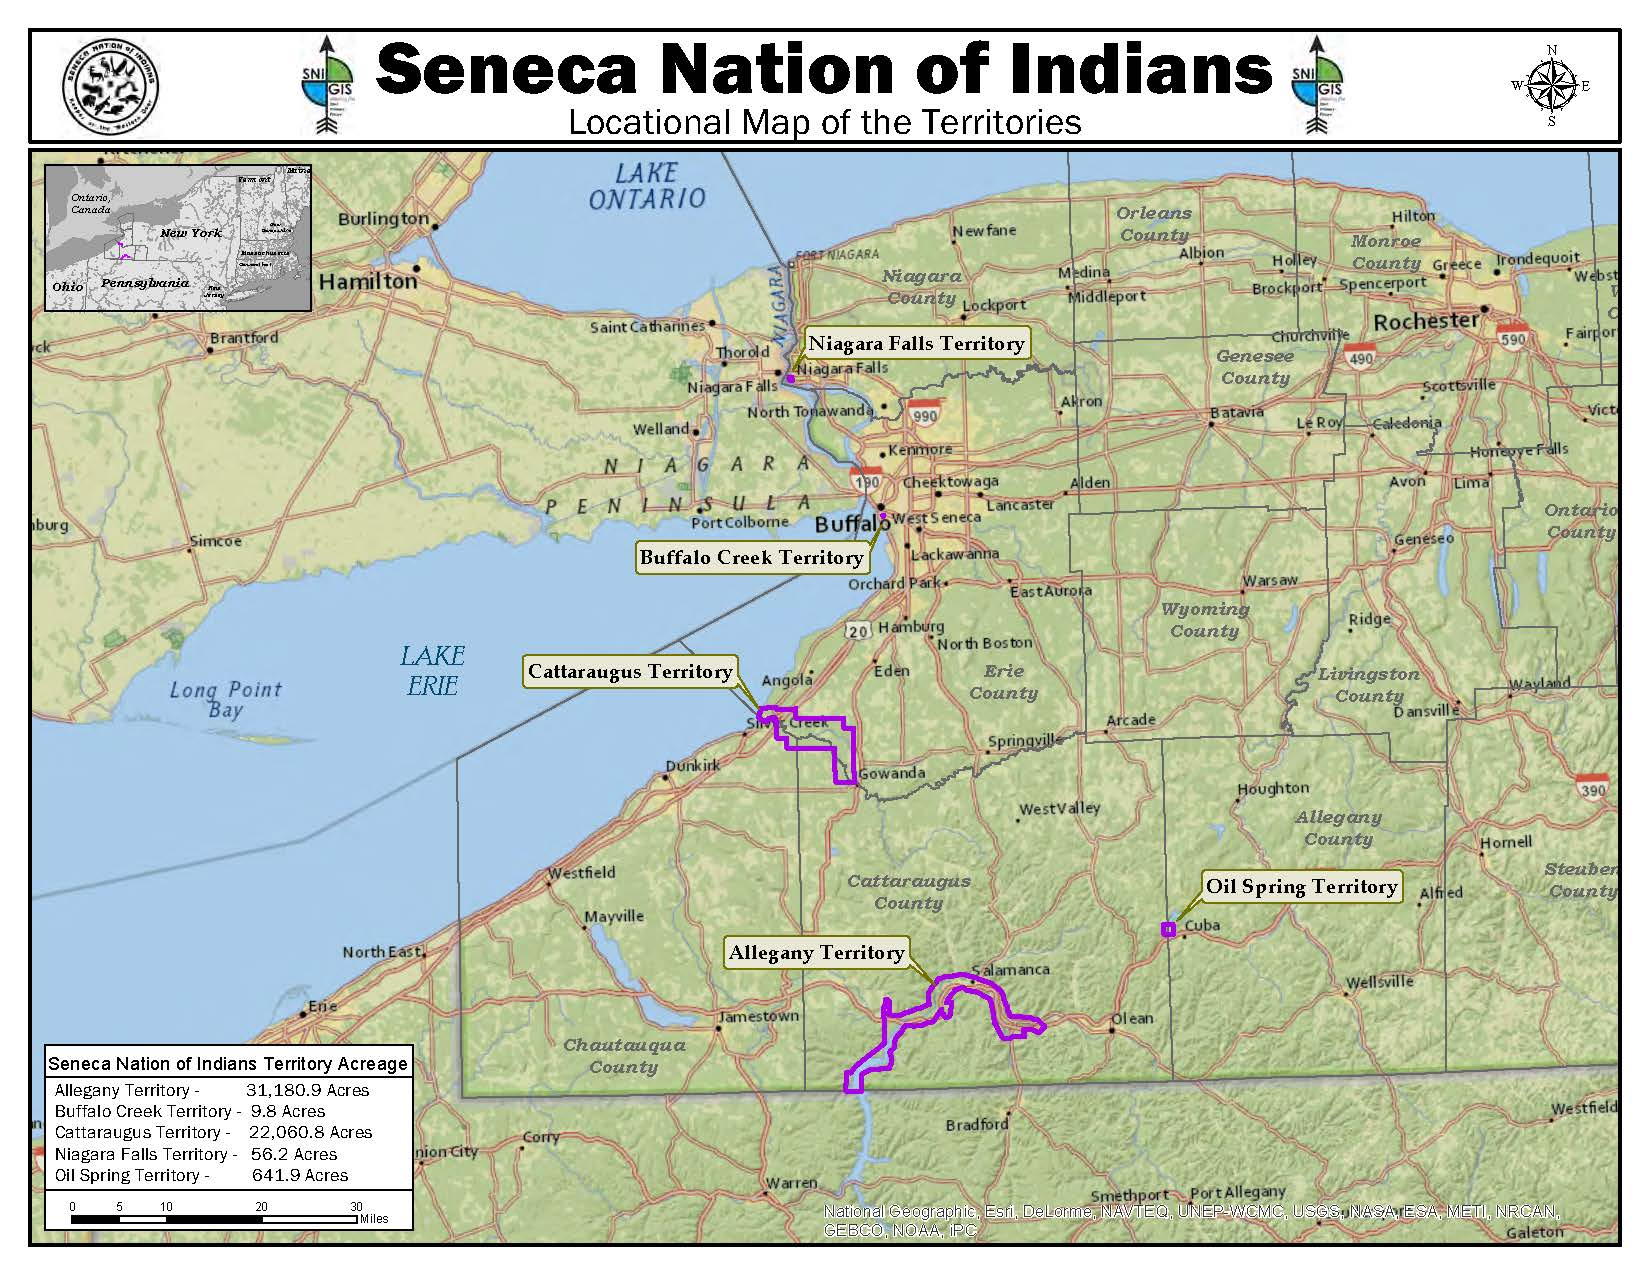 Lands of the Seneca Nation of Indians in Western New York State